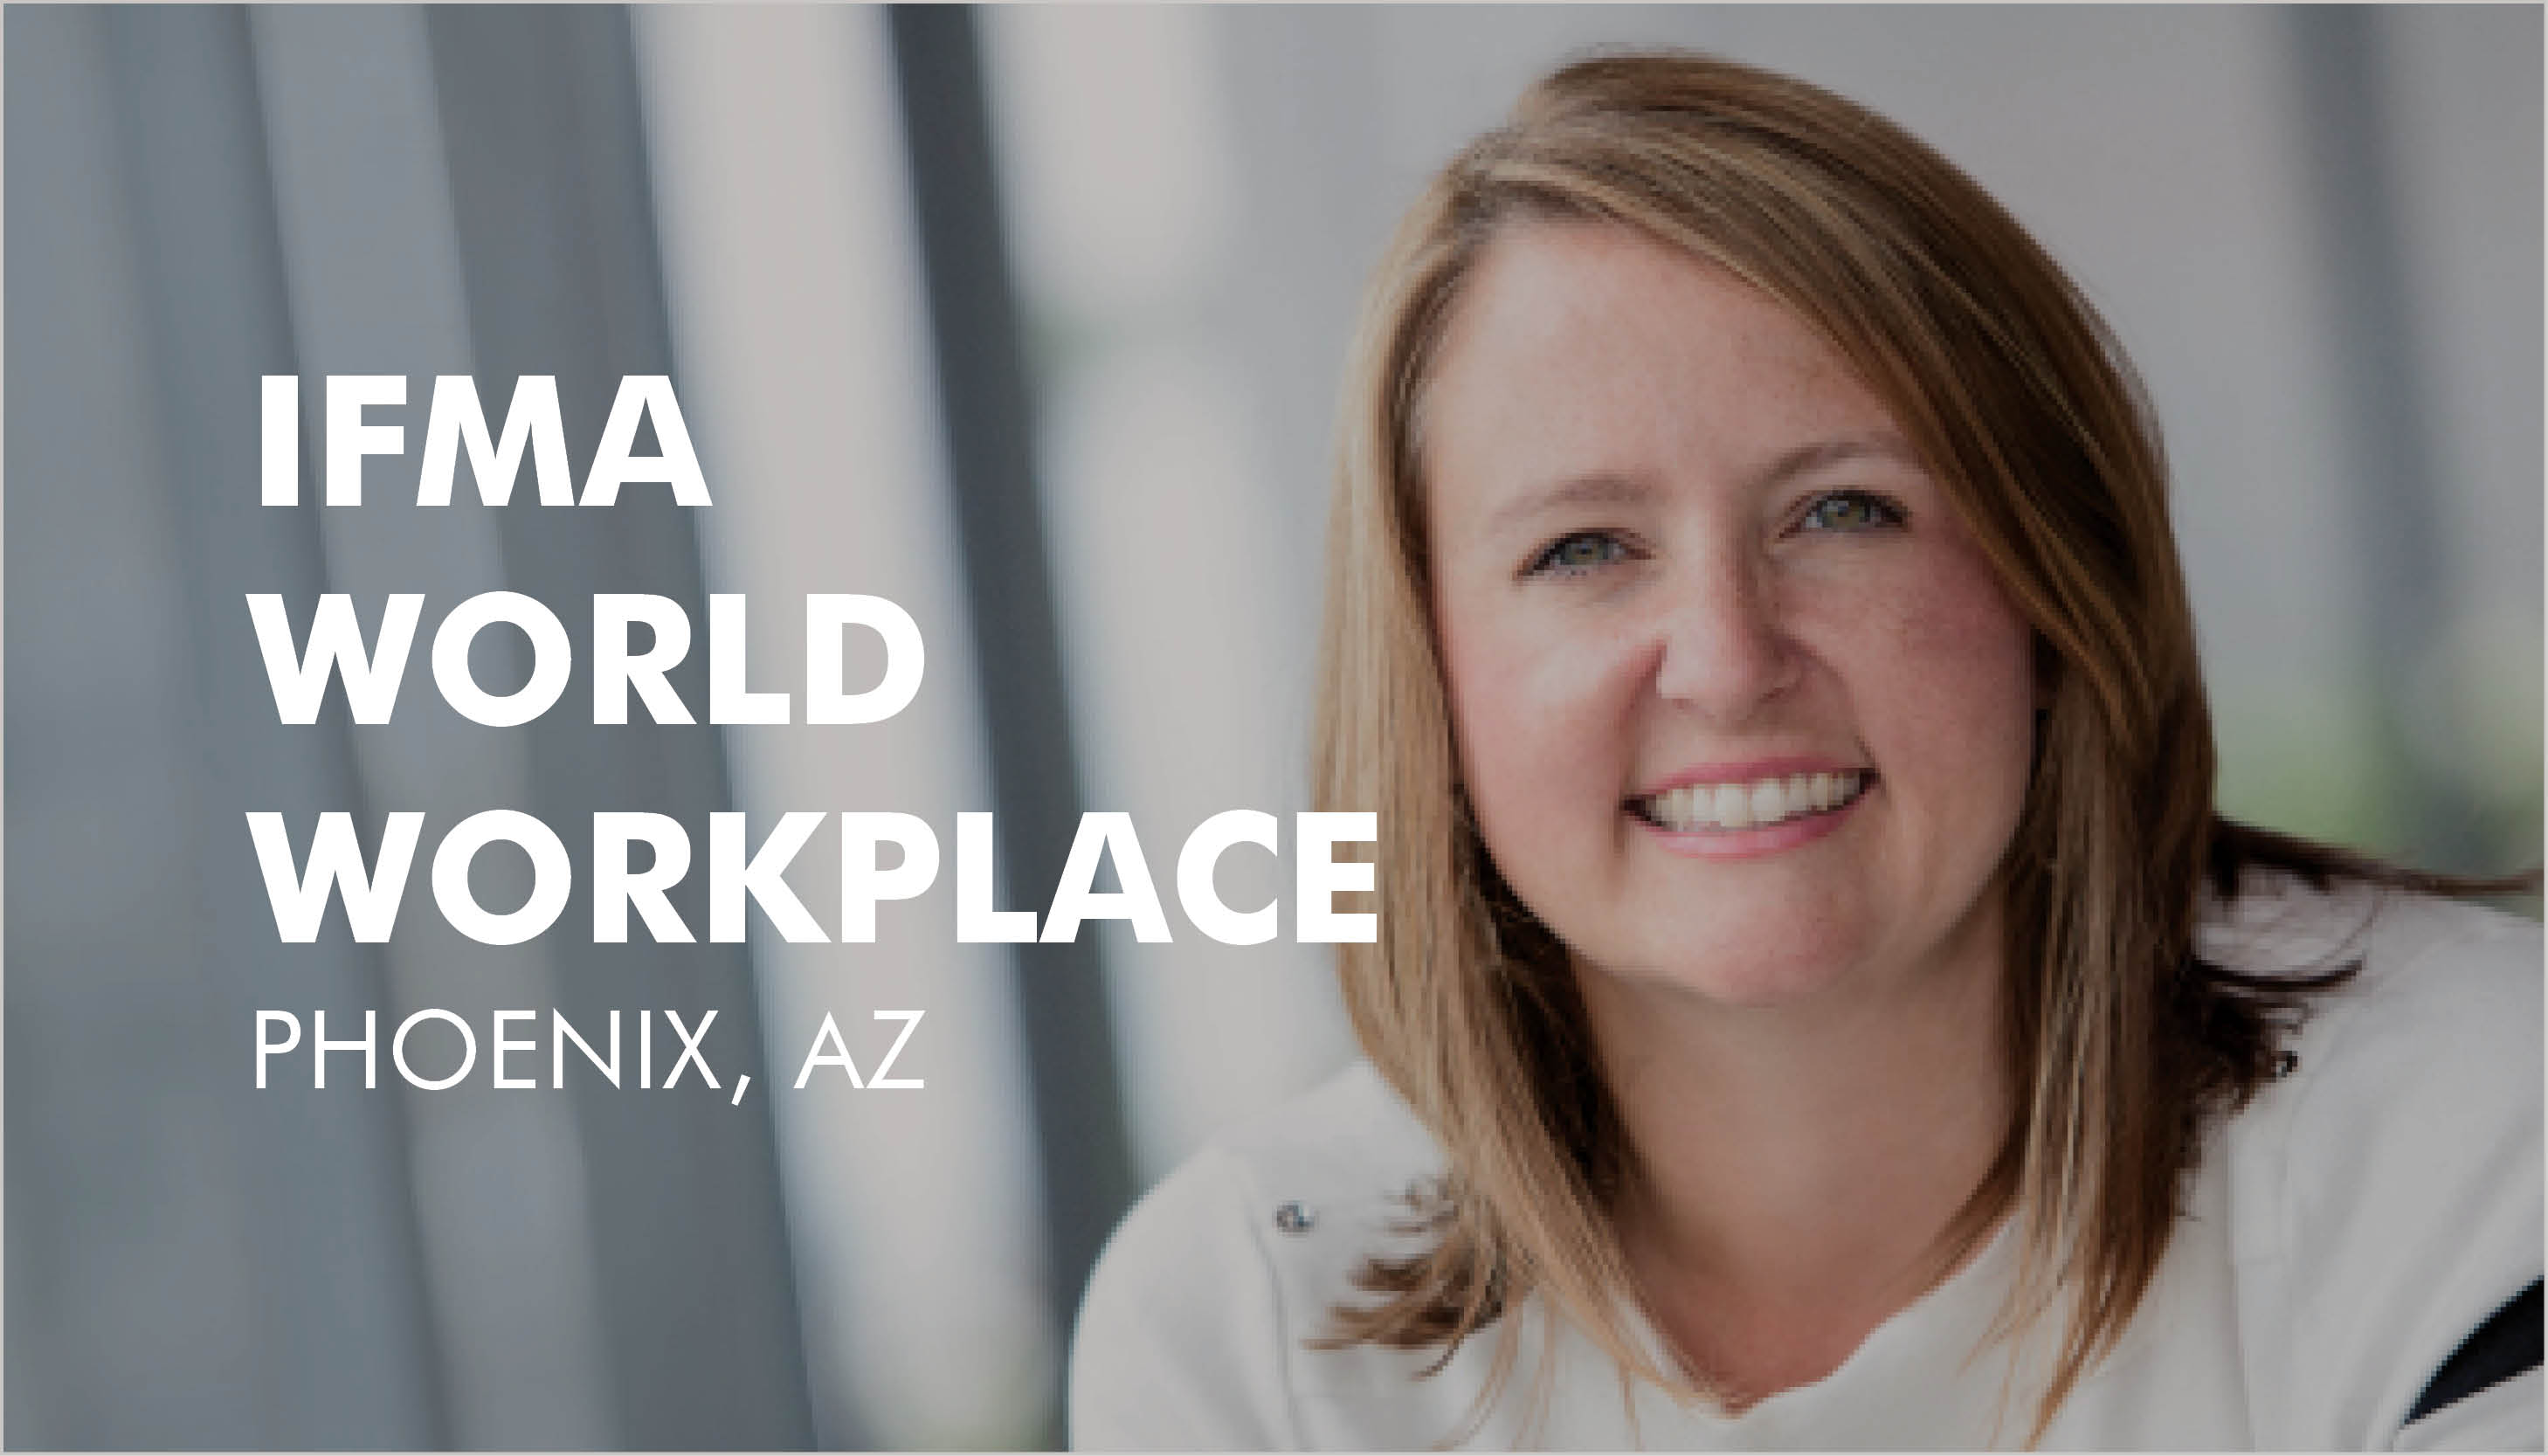 IFMA World Workplace - Workplace Evolutionaries Conference 2019 Image